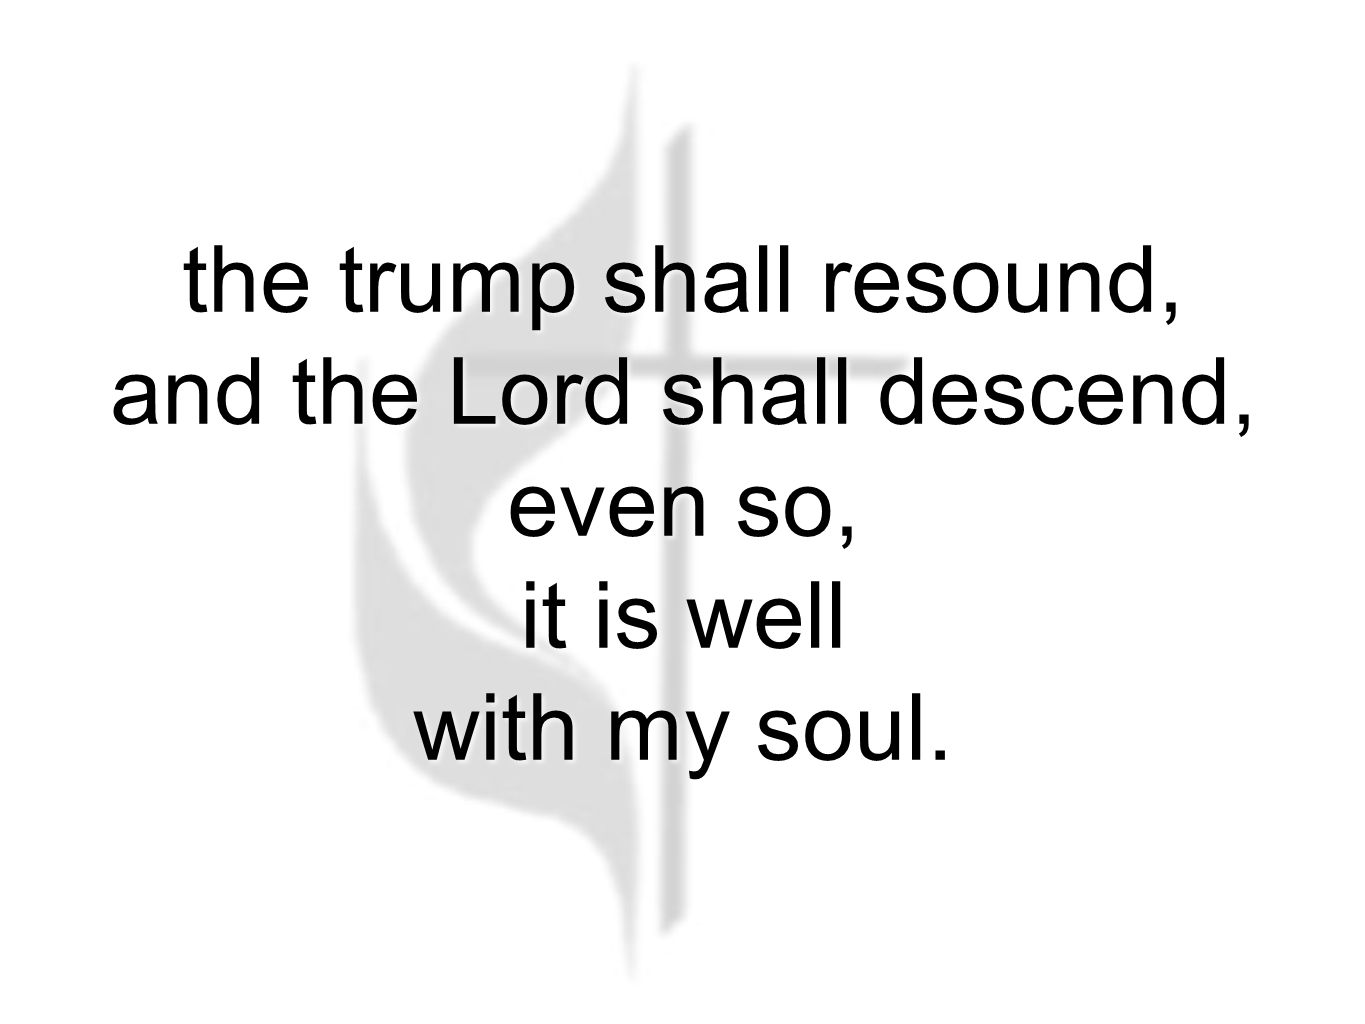 the trump shall resound, and the Lord shall descend, even so, it is well with my soul.